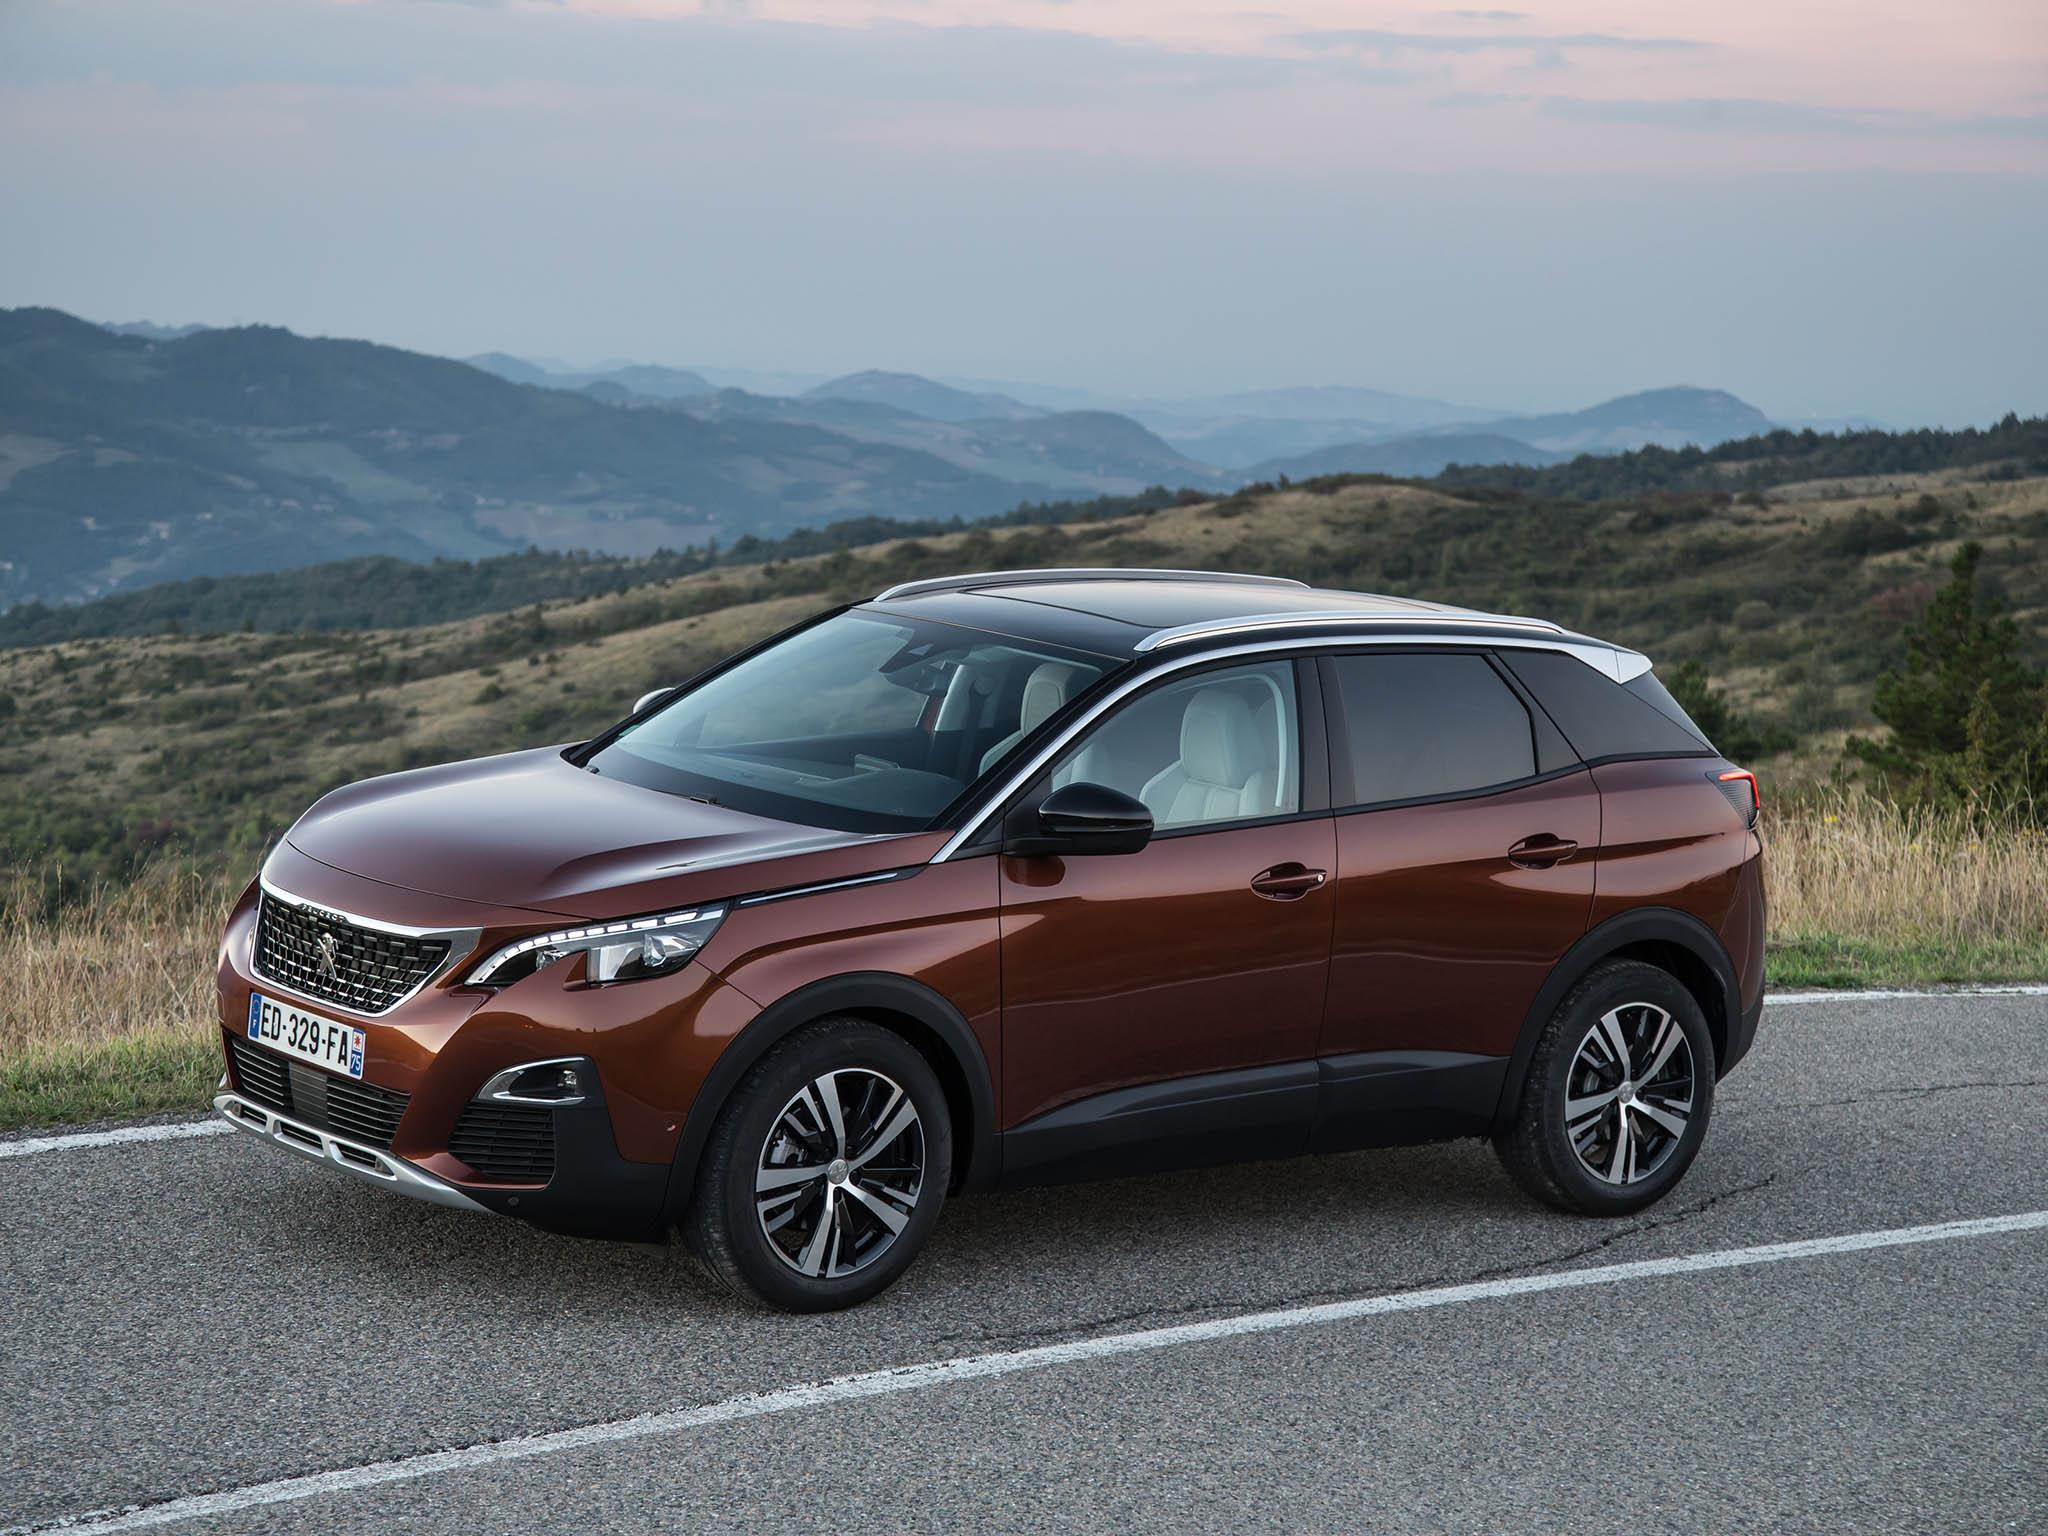 car review peugeot 3008 crossover suv pushes premium style to the max the independent. Black Bedroom Furniture Sets. Home Design Ideas